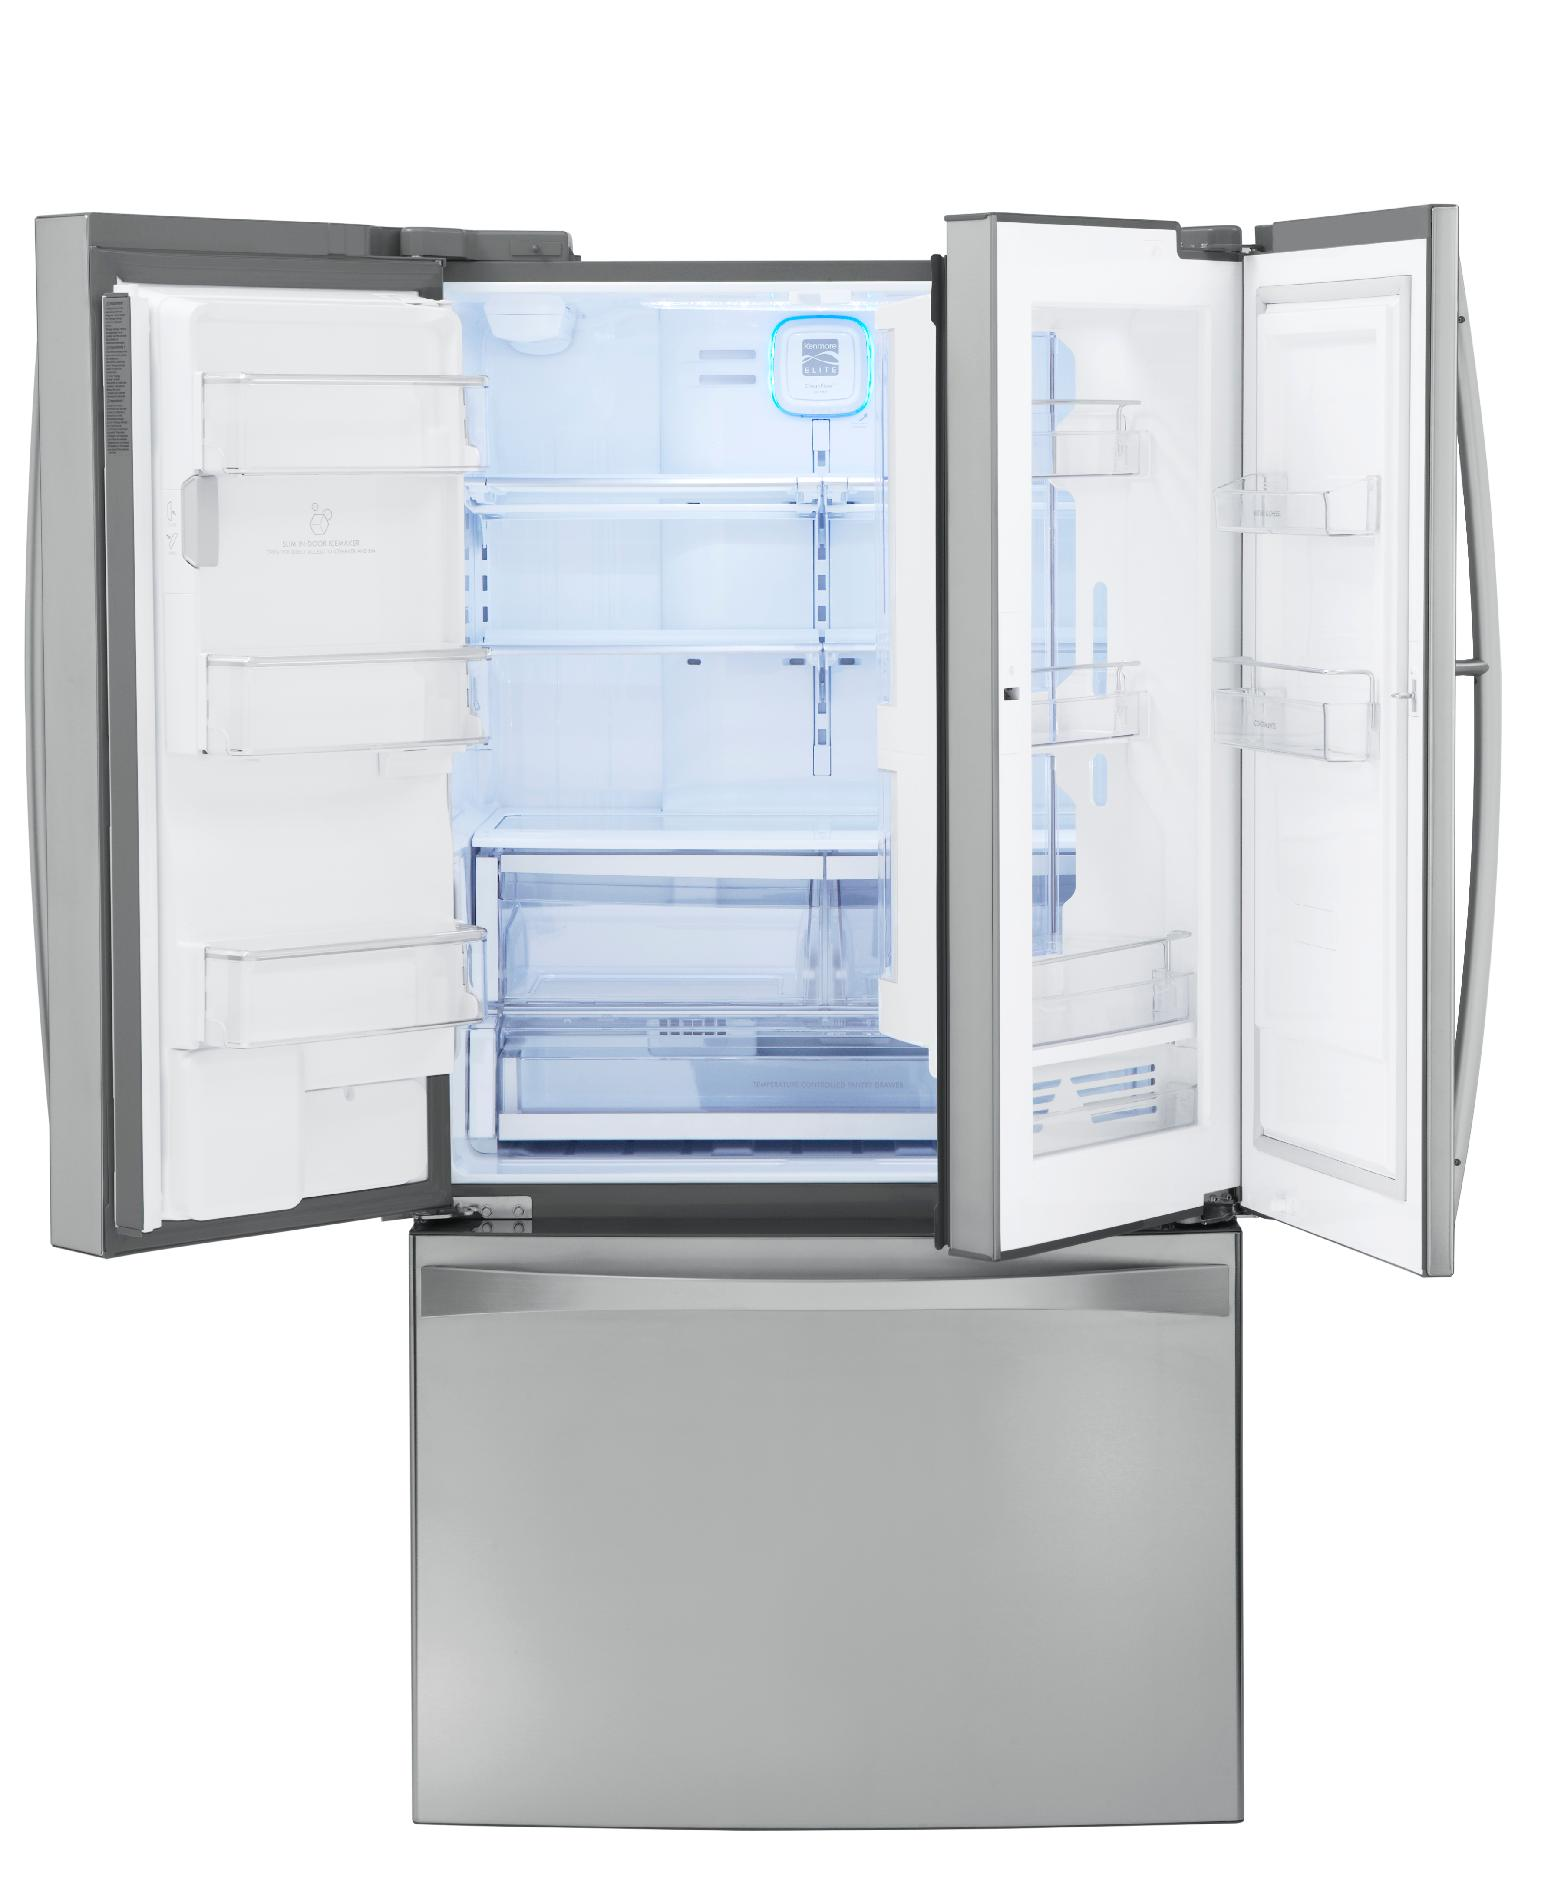 Kenmore Elite 25 cu. ft. Counter-Depth Grab-N-Go™ French Door Bottom-Freezer Refrigerator - Stainless Steel